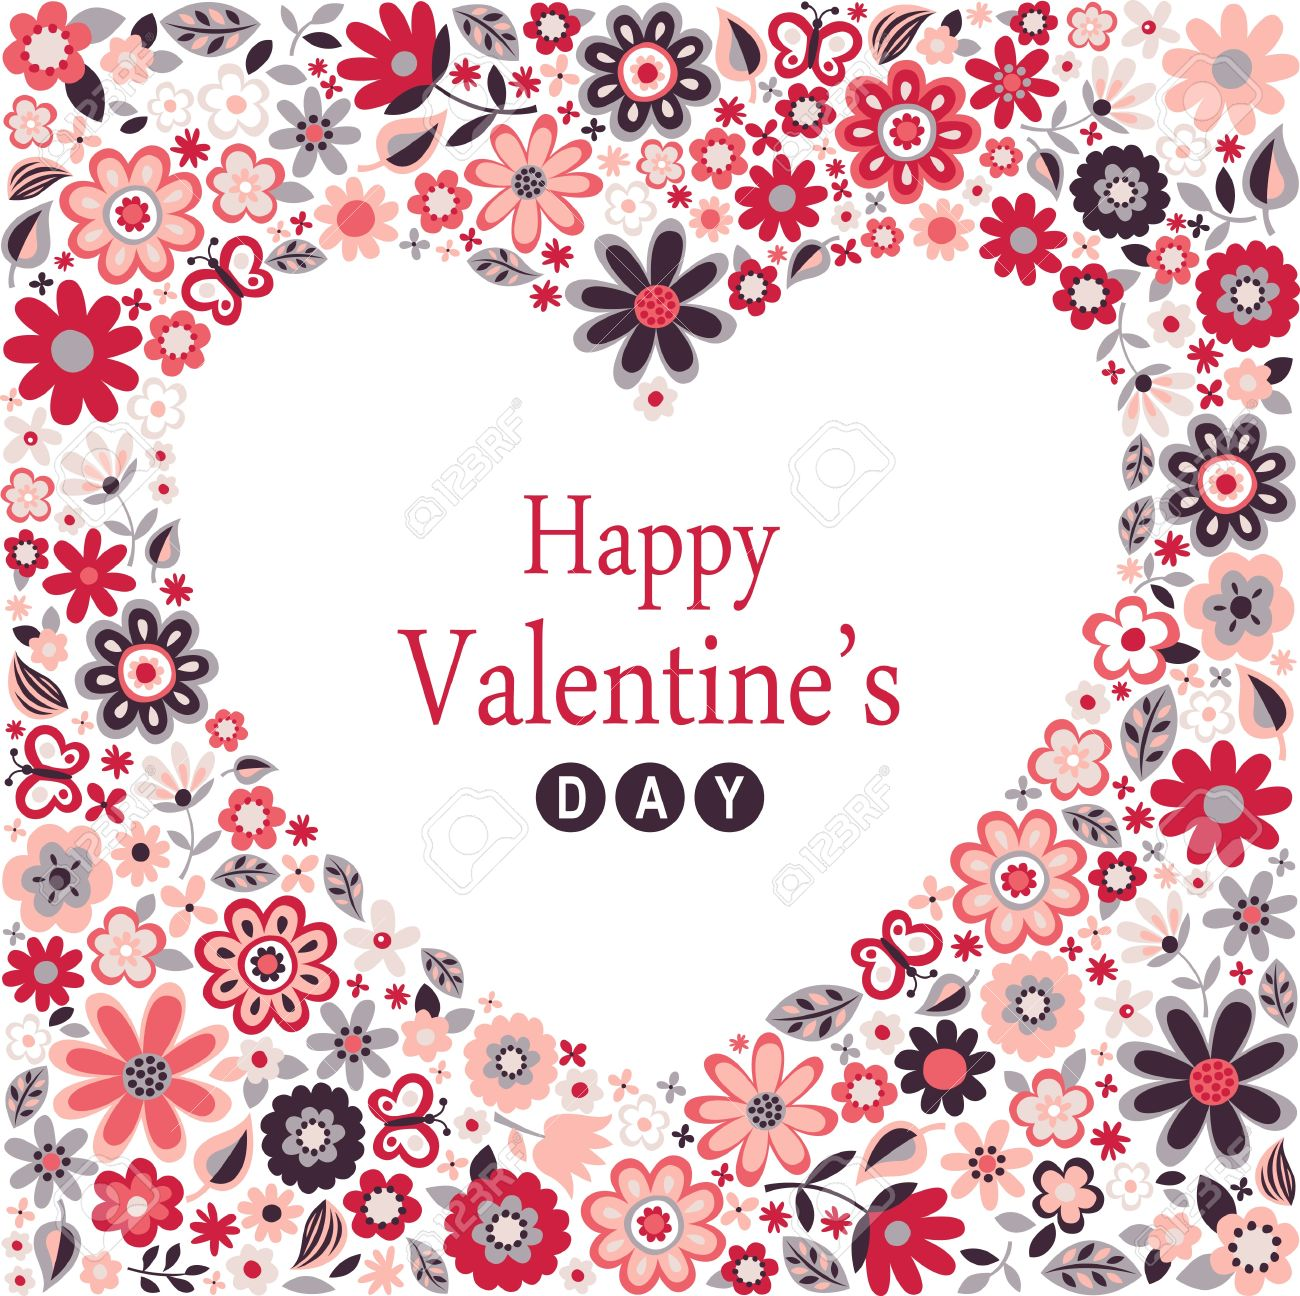 Happy Valentines Day Card Royalty Free Cliparts Vectors And Stock